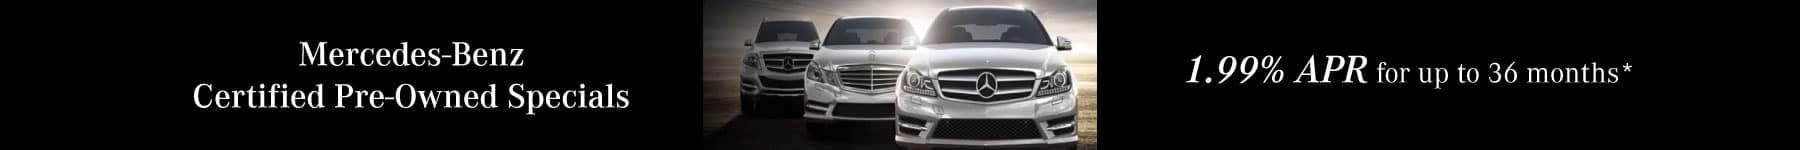 mercedes-benz of fairfield mercedes certified pre-owned specials